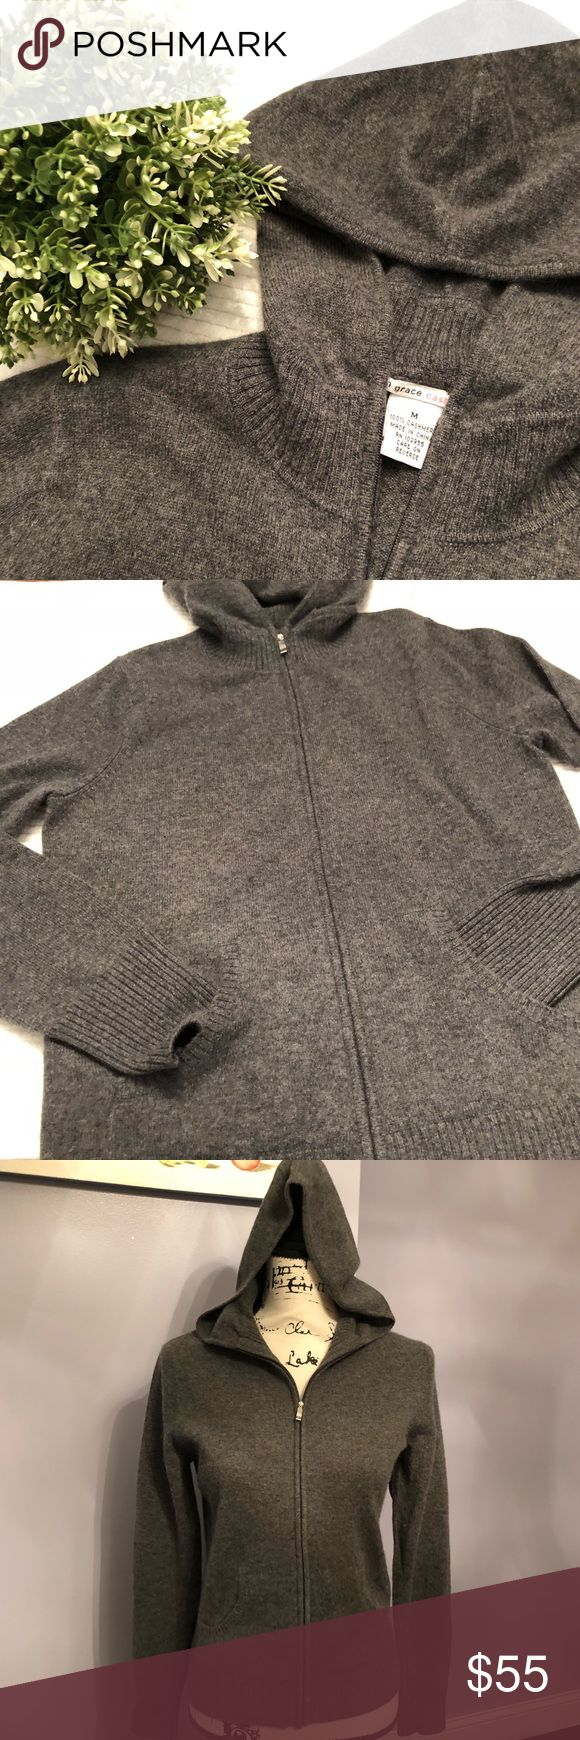 """Cashmere hoodie Evelyn Grace grey 100% cashmere sweater  Full zip up with hood Grey color Long sleeves  Size medium  Like new condition   Measurements are approximate and taken laying flat  Bust 17.5"""" Back length 23"""" Bottom hem 15.5"""" Waist 16.5"""" Bin8 evelyn grace cashmere Sweaters"""